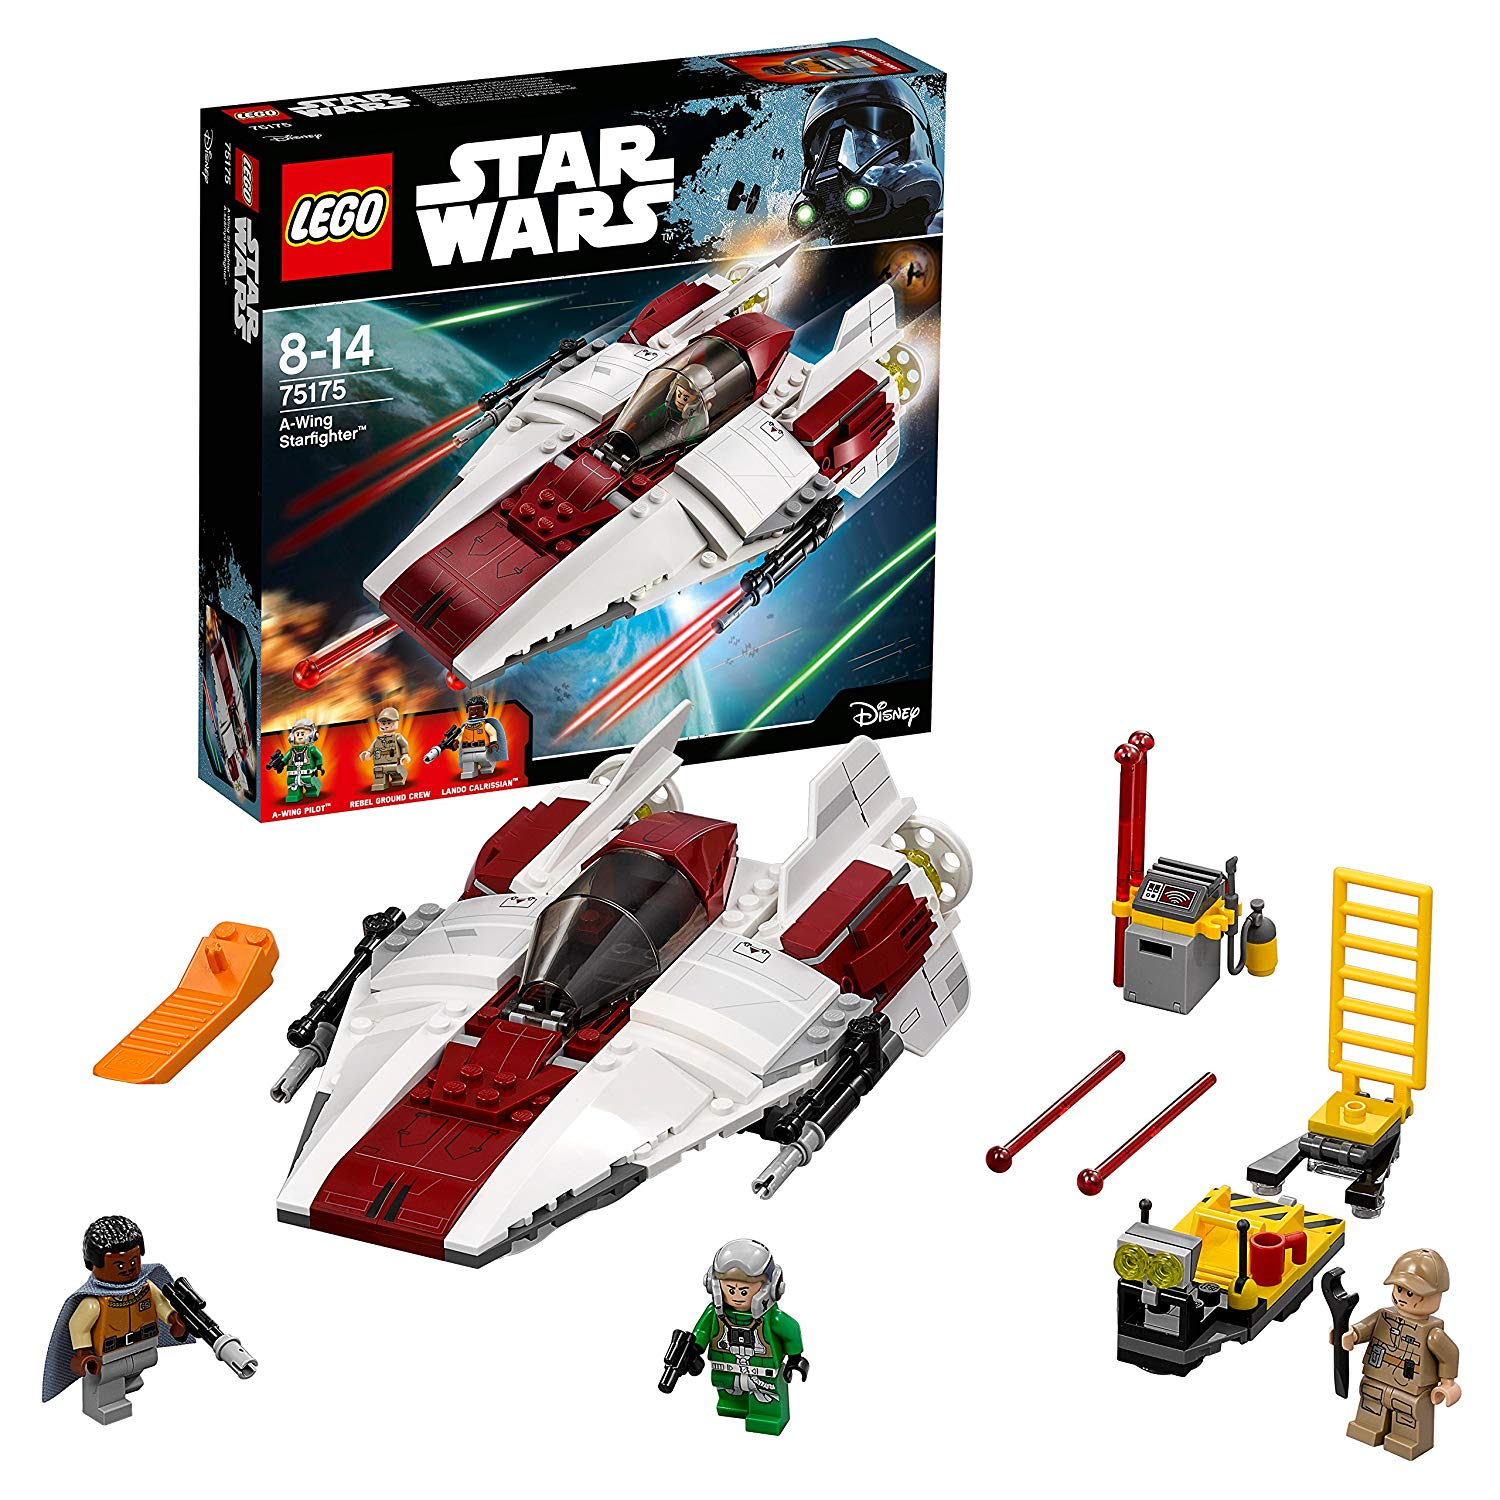 Star Wars lego Prime Day deal